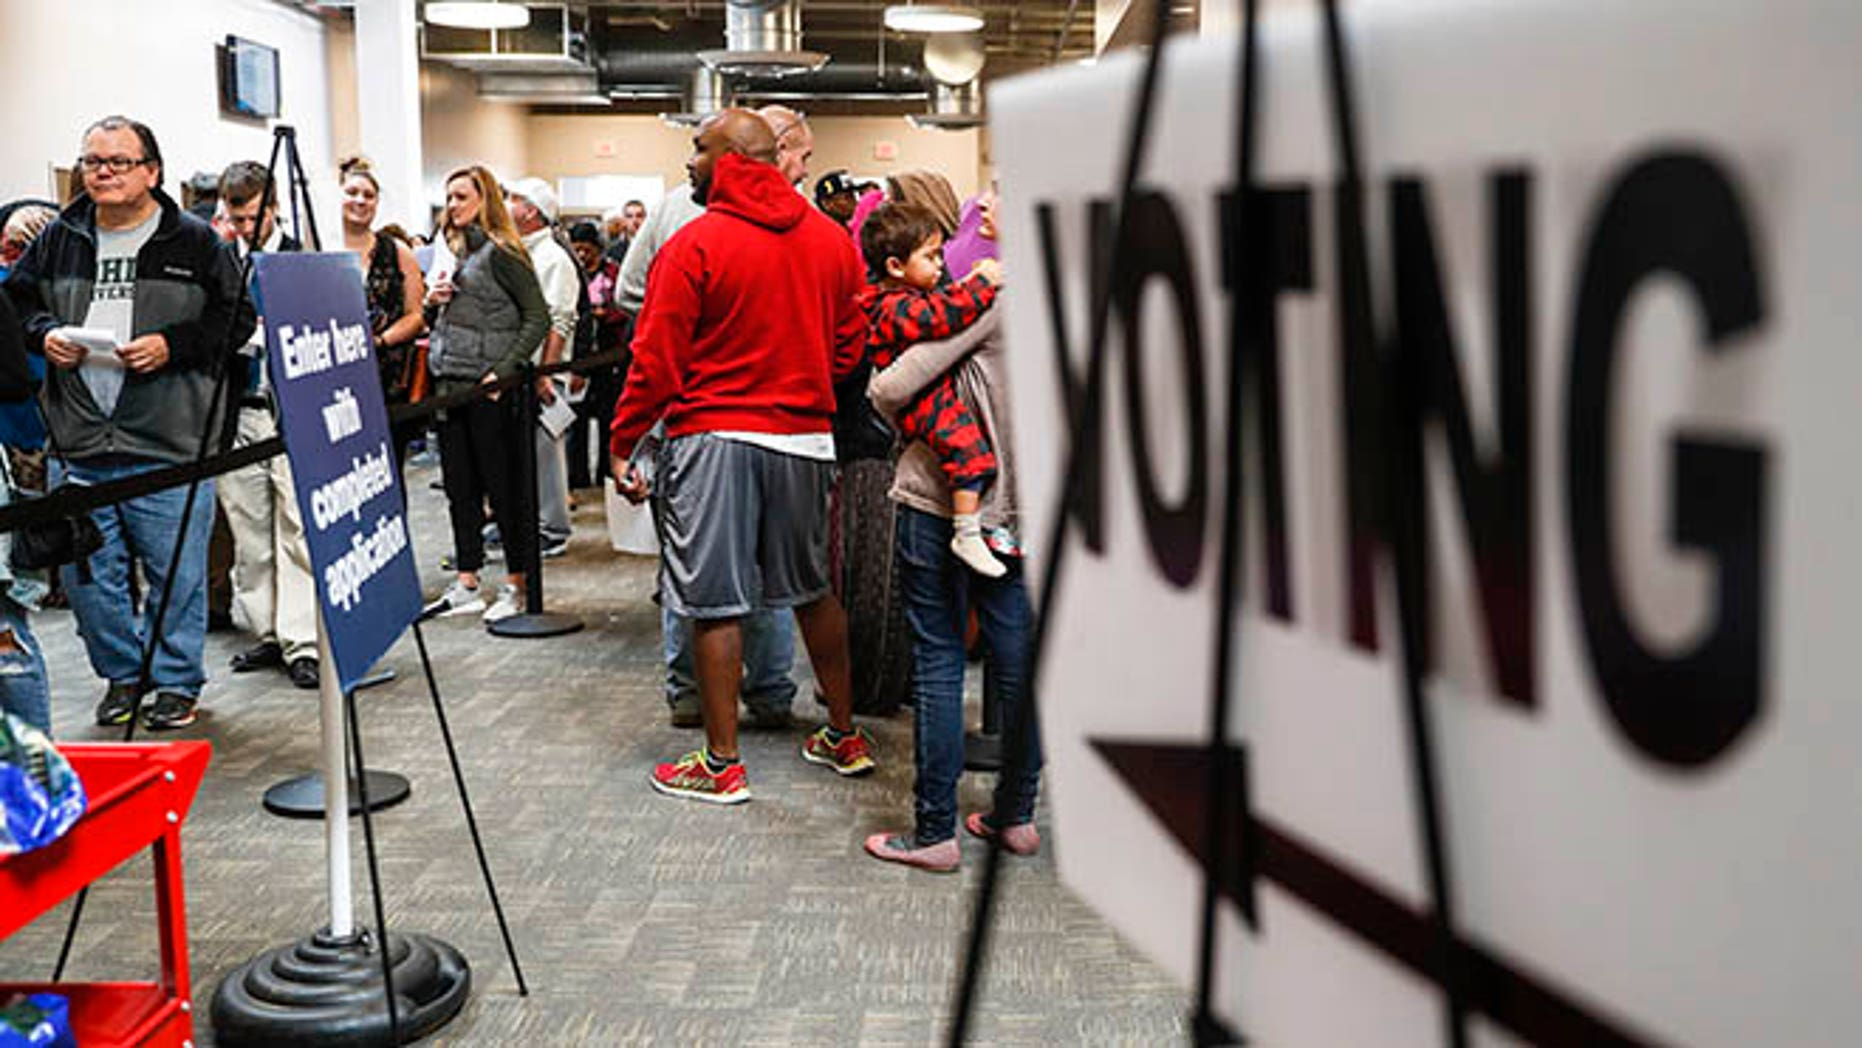 A line of early voters wait in queue at the Franklin County Board of Elections, Monday, Nov. 7, 2016, in Columbus, Ohio. Heavy turnout has caused long lines as voters take advantage of their last opportunity to vote before election day. (AP Photo/John Minchillo)